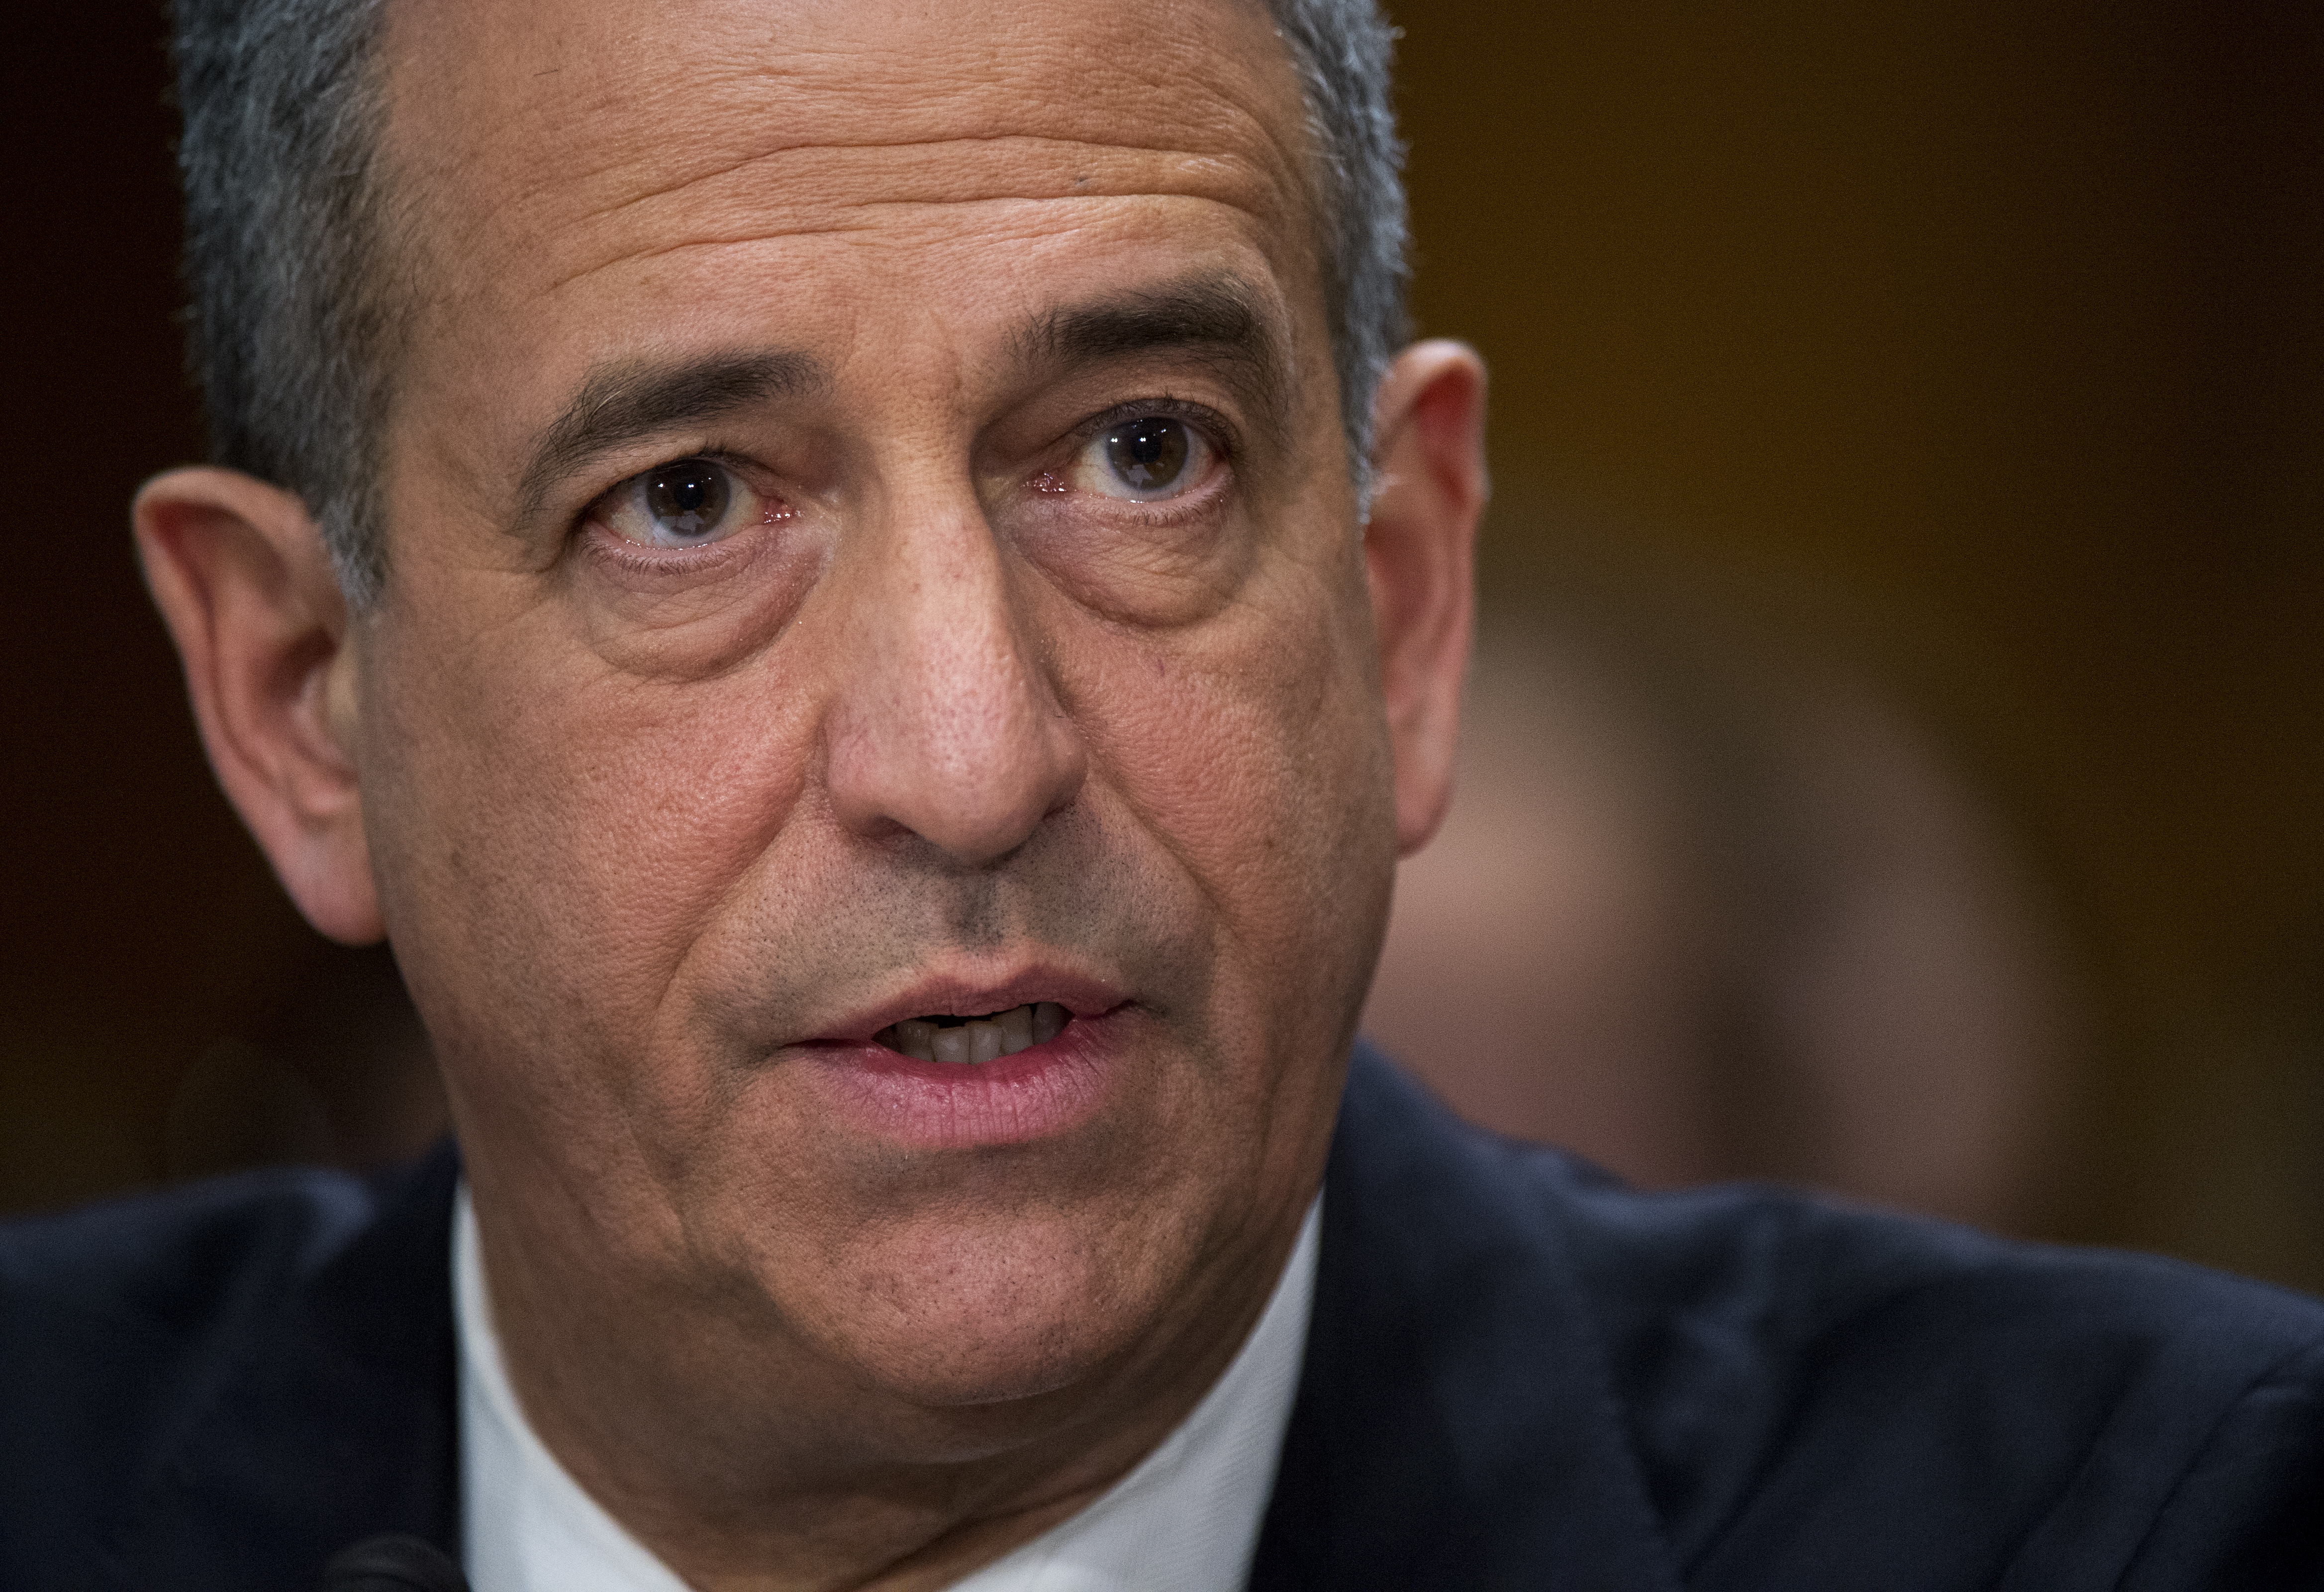 Russ Feingold testifies before a Senate Foreign Relations Committee hearing, on Feb. 26, 2016.